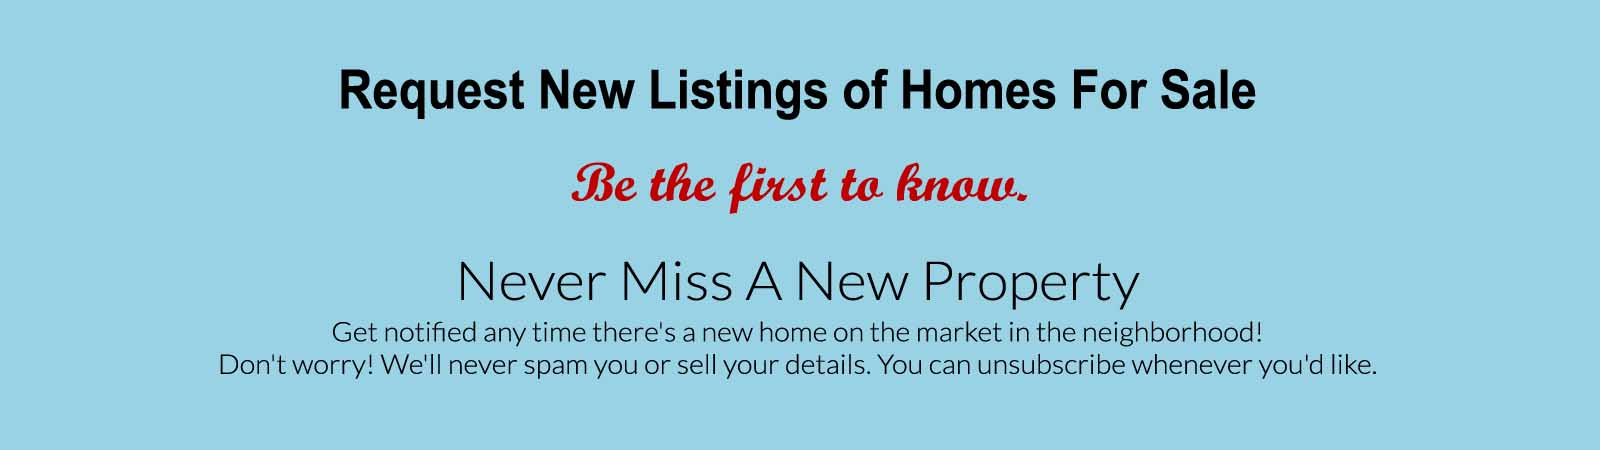 Request New Listings of Homes For Sale